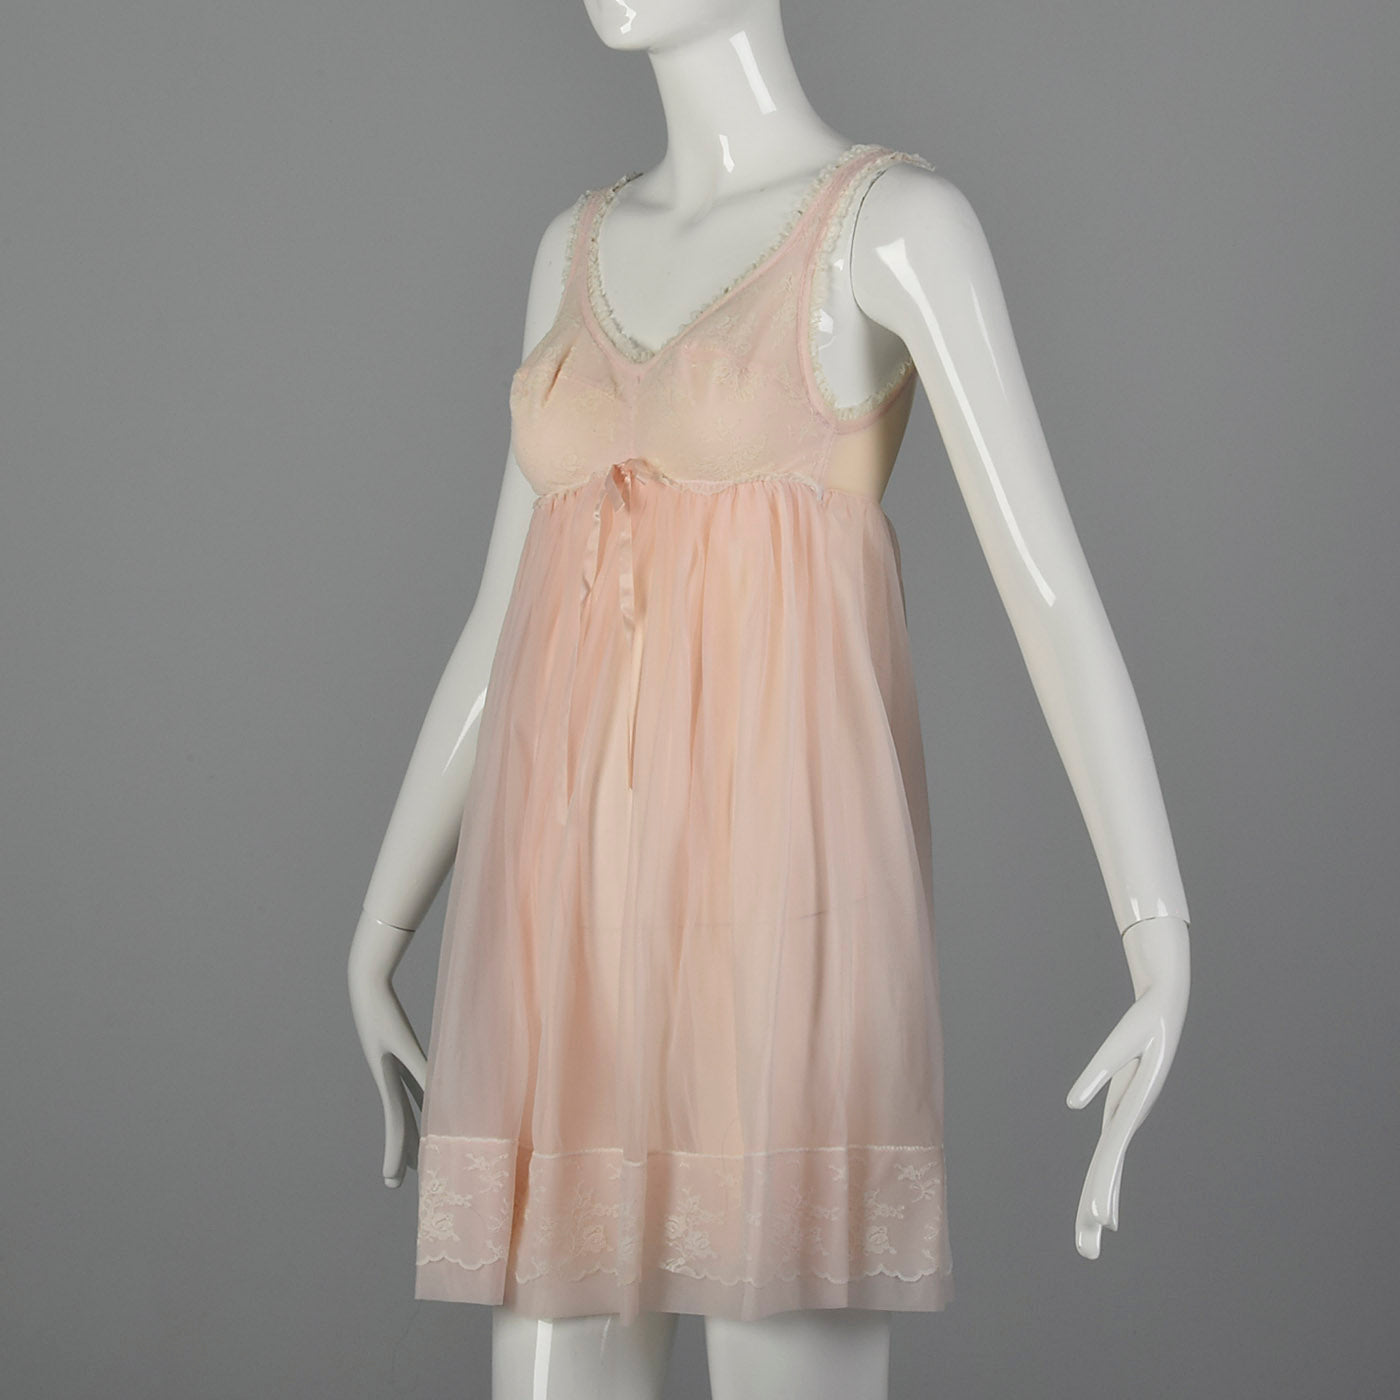 1960s Pink Babydoll Nightgown with Matching Peignoir